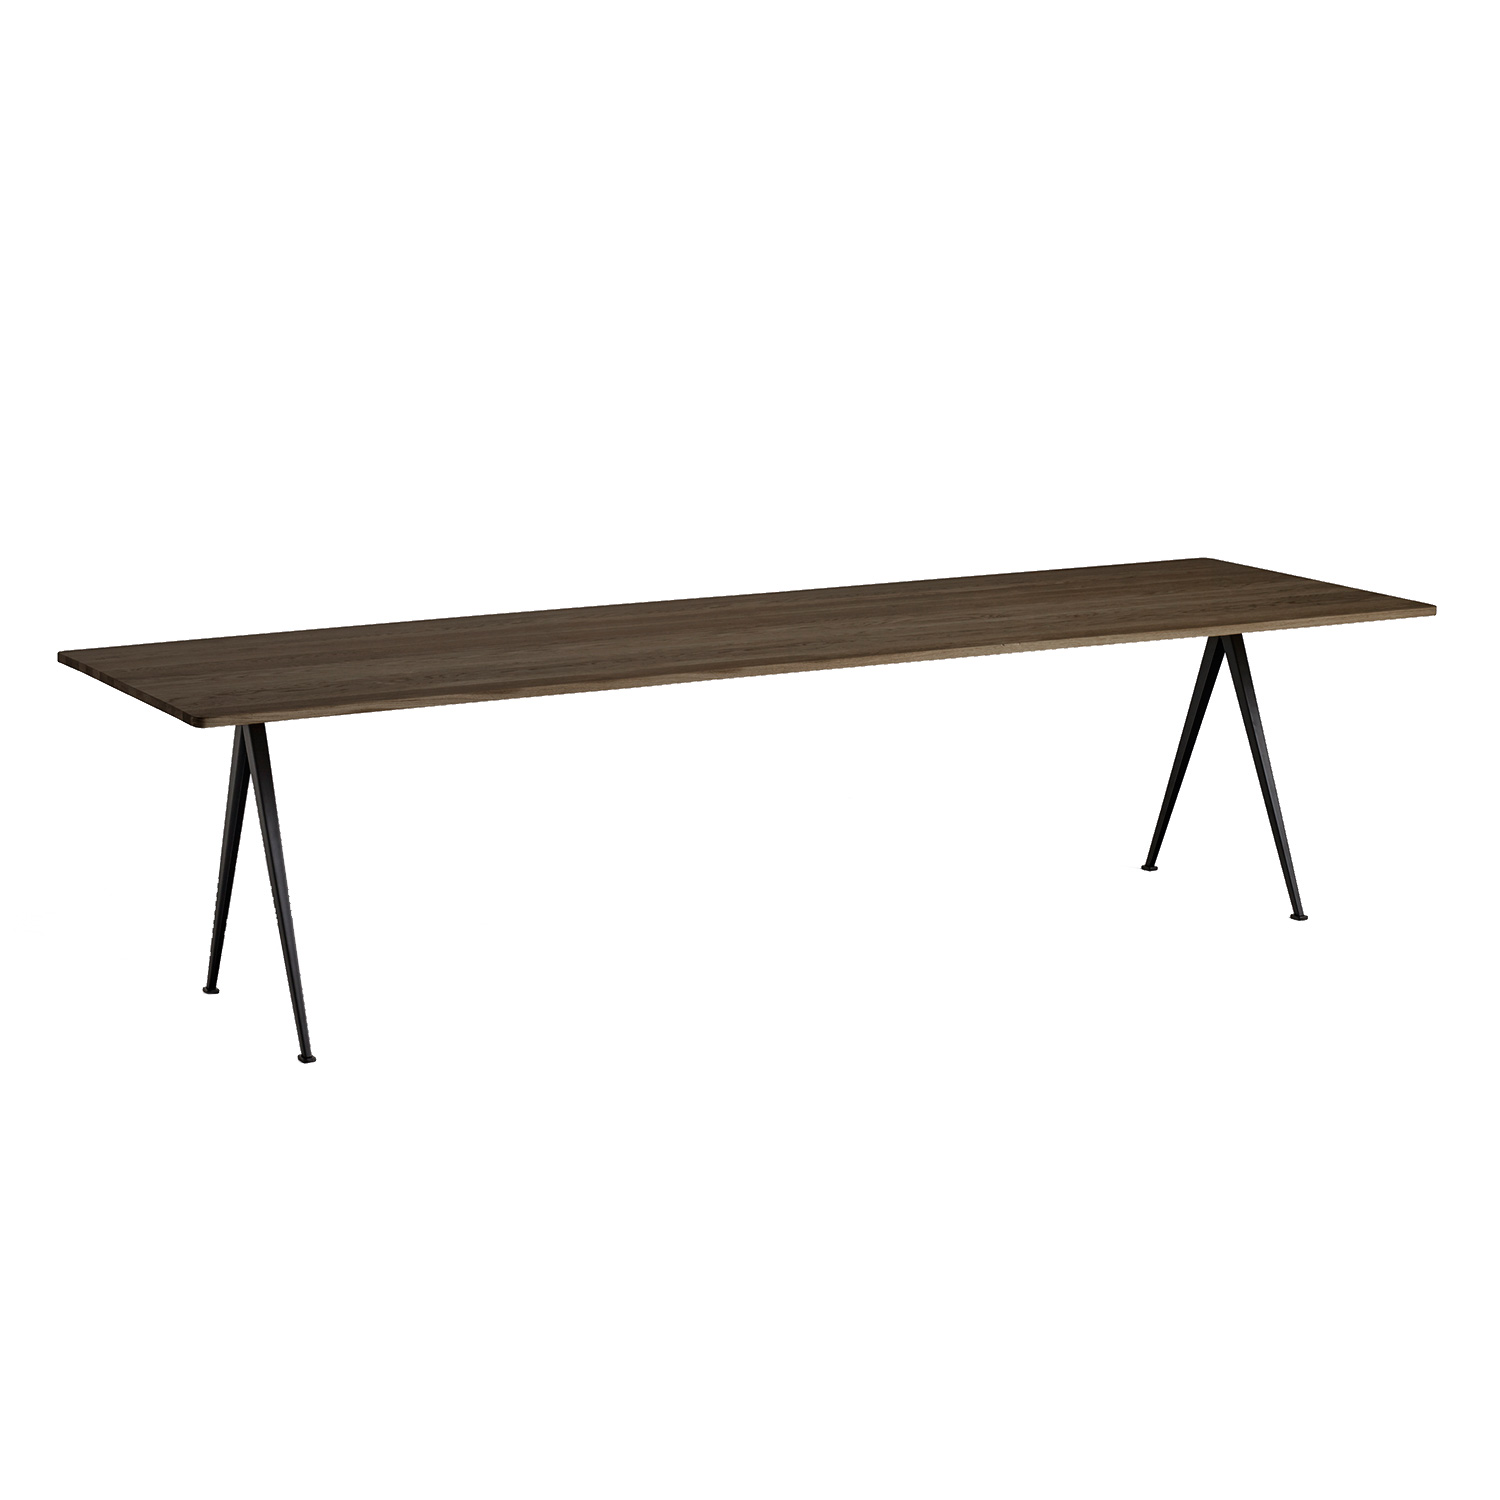 Pyramid table 02 300x85, black frame/smoked